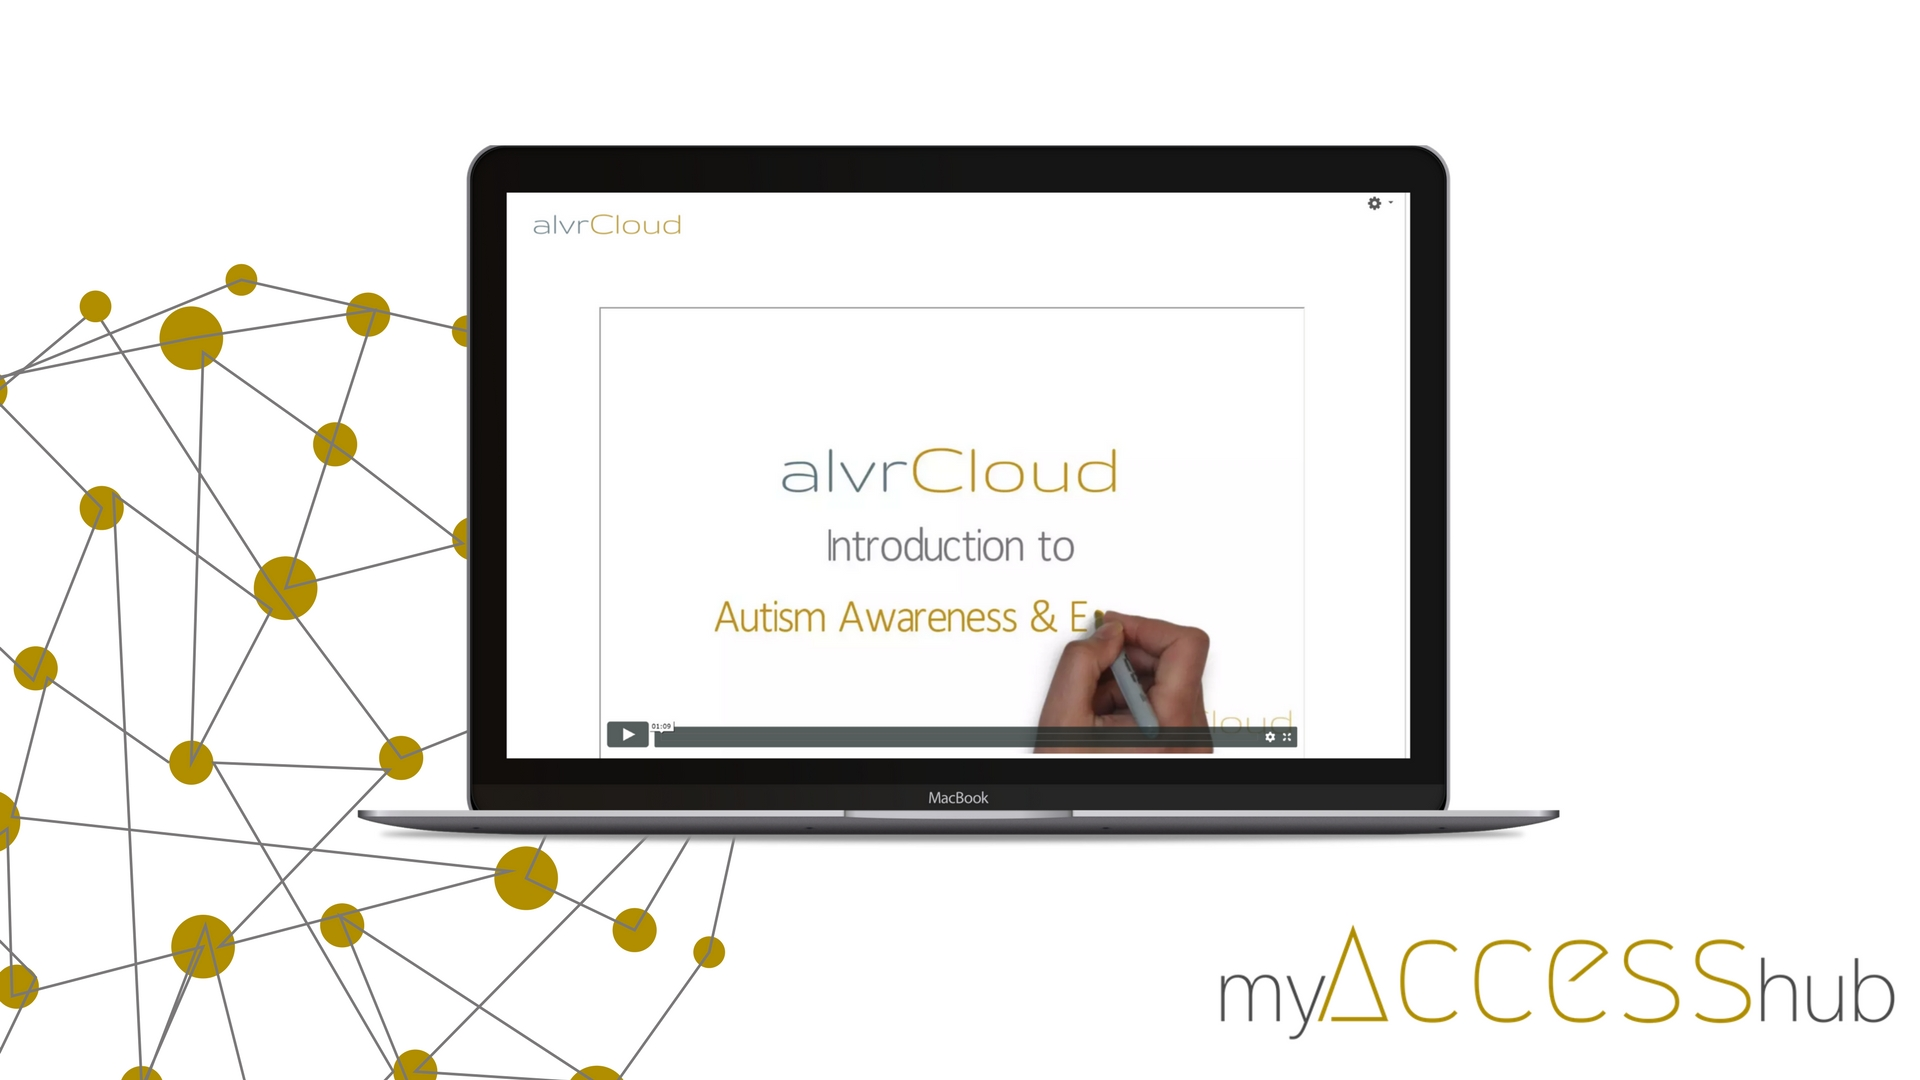 myAccessHub alvrCloud | Autism Accessibility & Inclusion in the